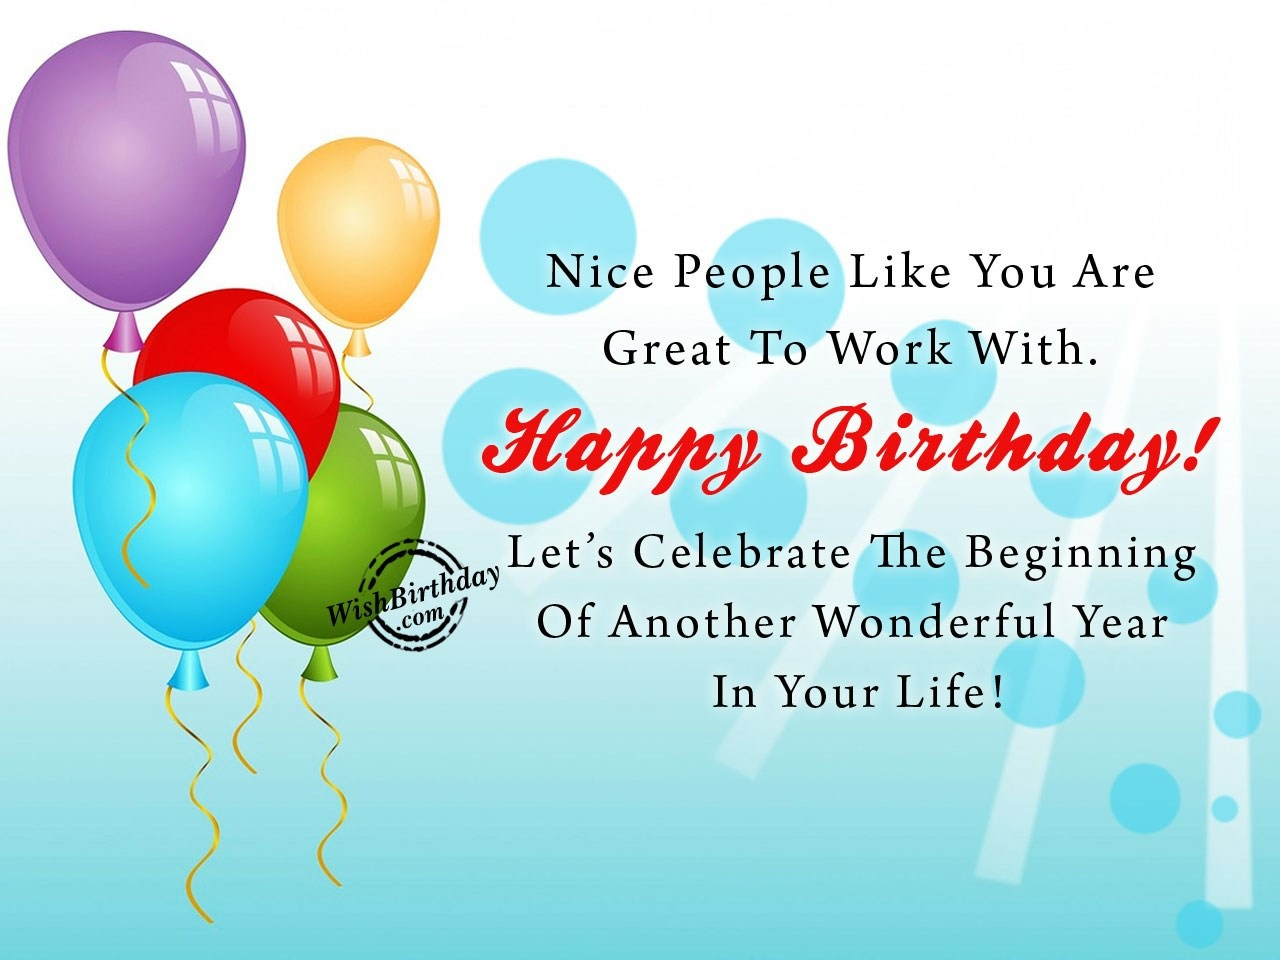 happy birthday message colleague ; happy-birthday-work-colleague-birthday-wishes-for-a-coworker-birthday-wishes-for-a-coworker